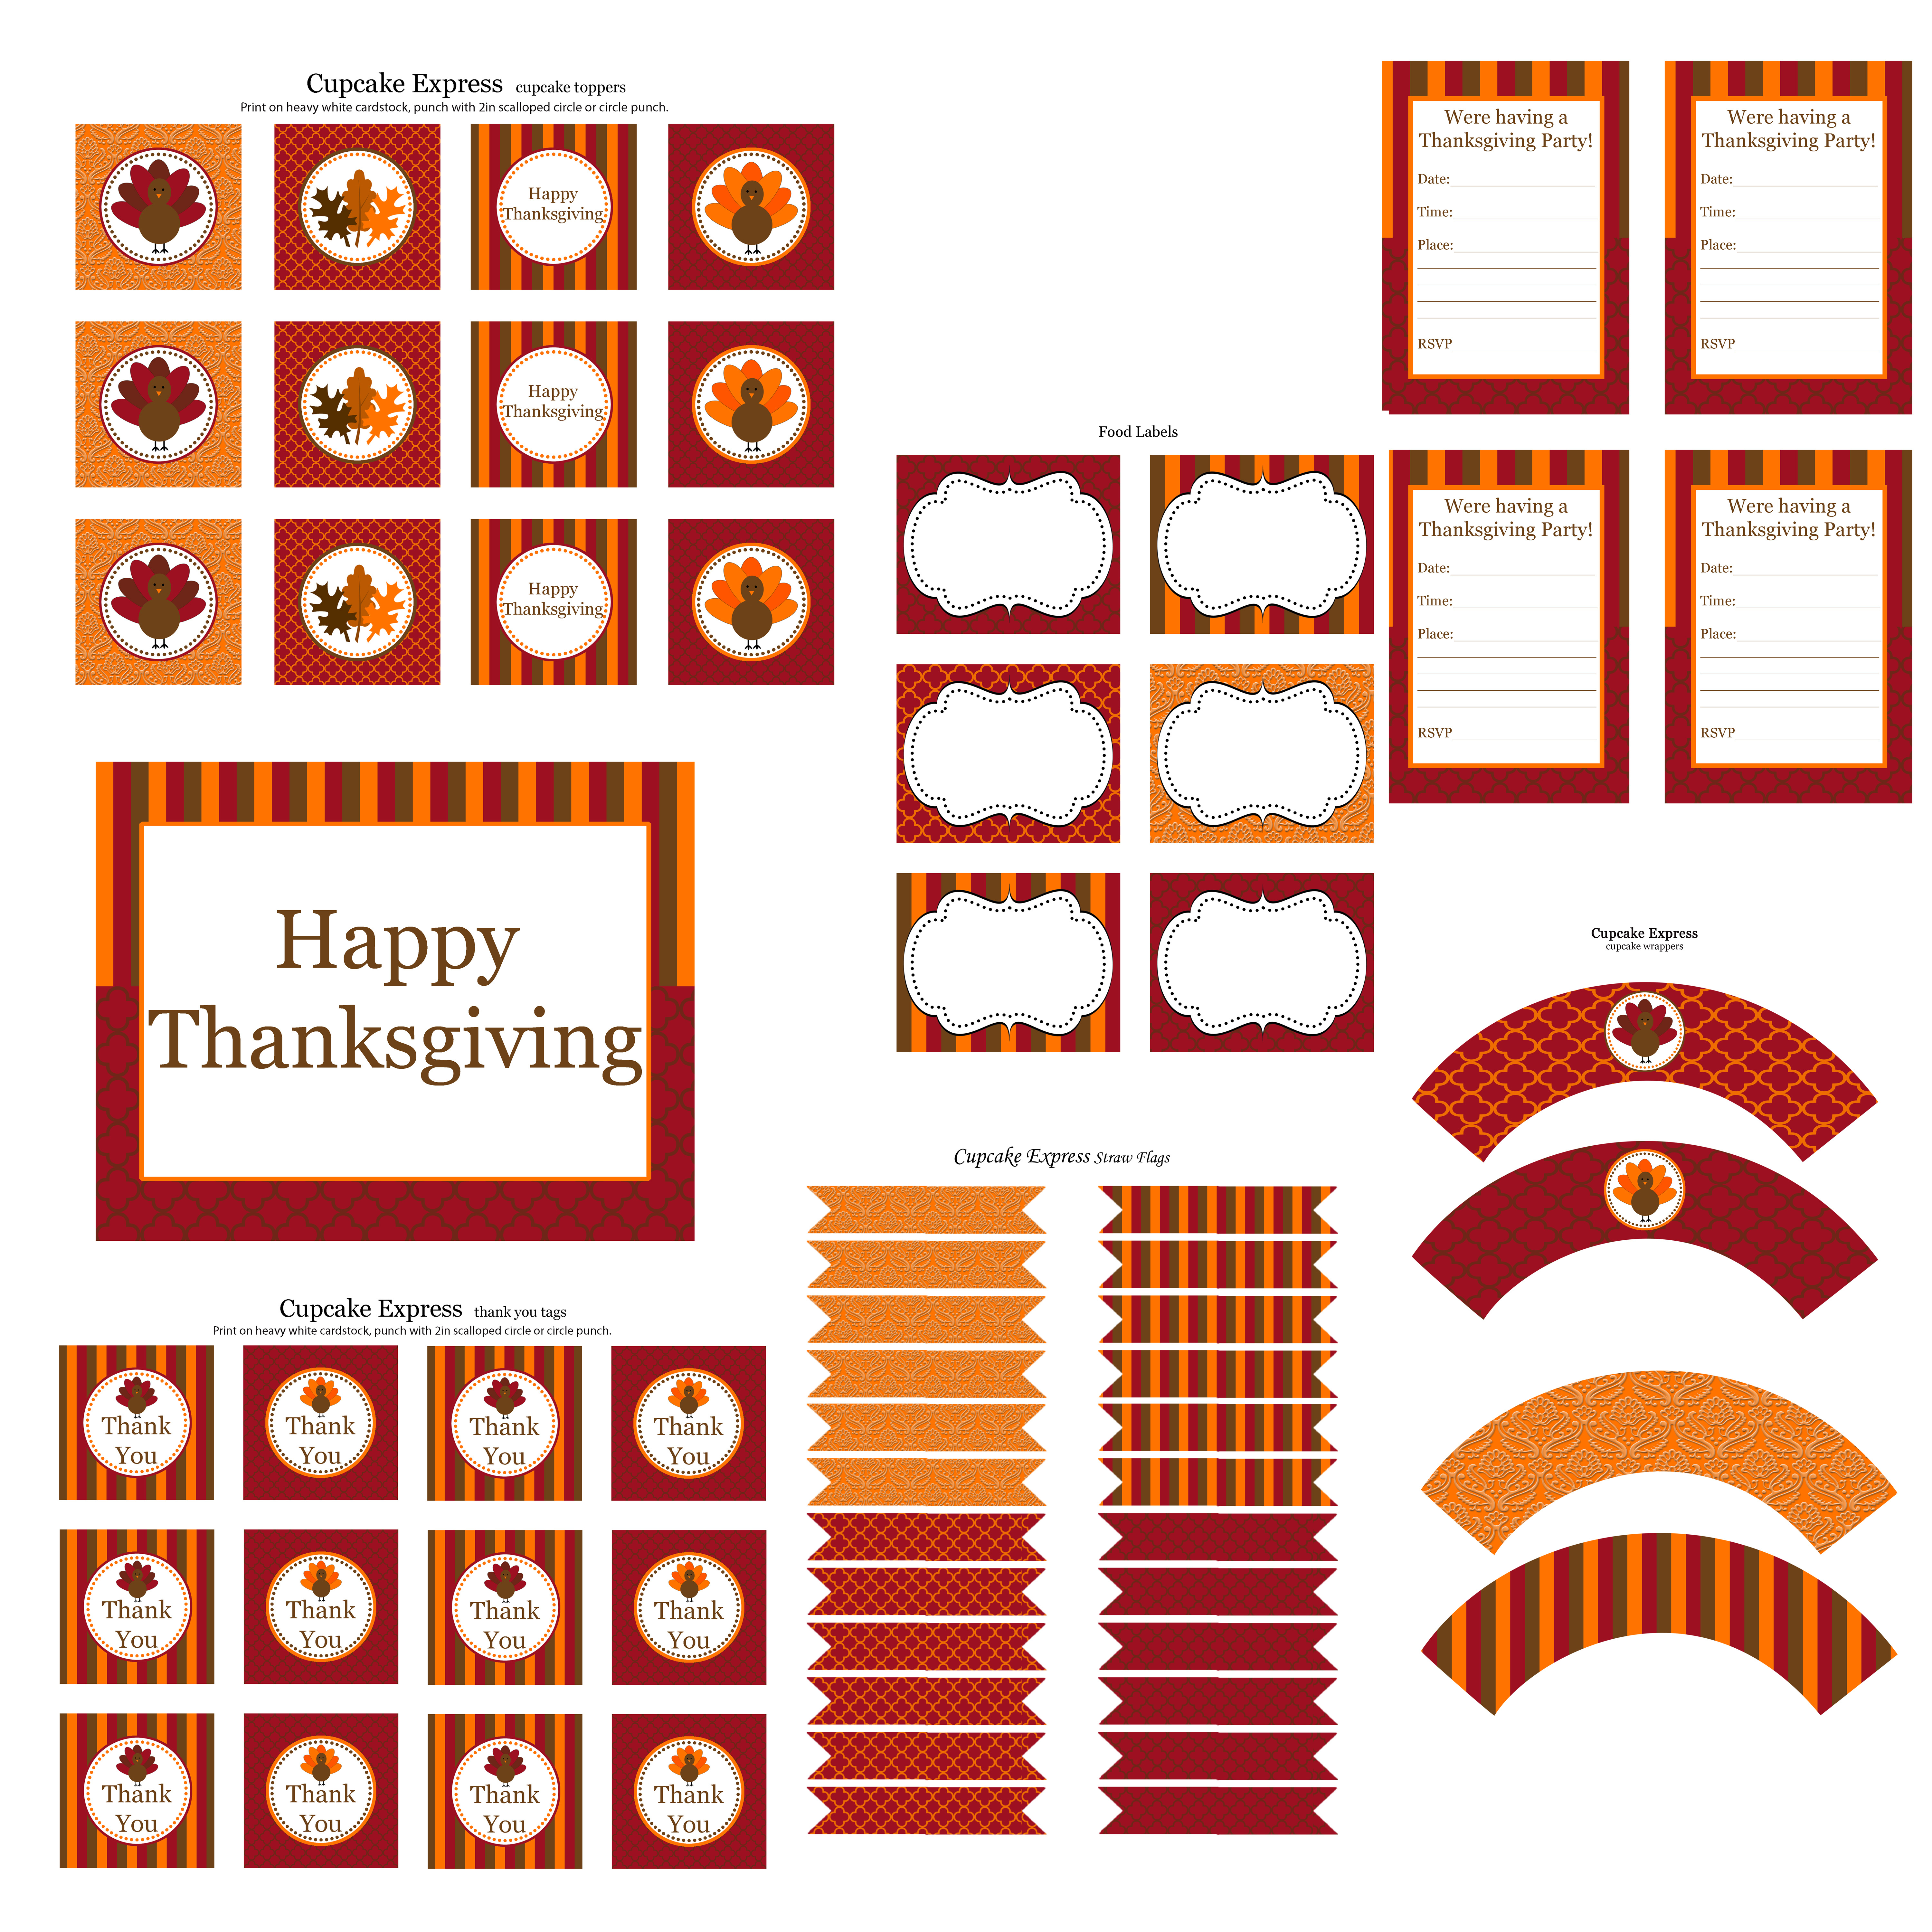 Free Thanksgiving Party Printables From Cupcake Express | Catch My Party - Cupcake Flags Printable Free